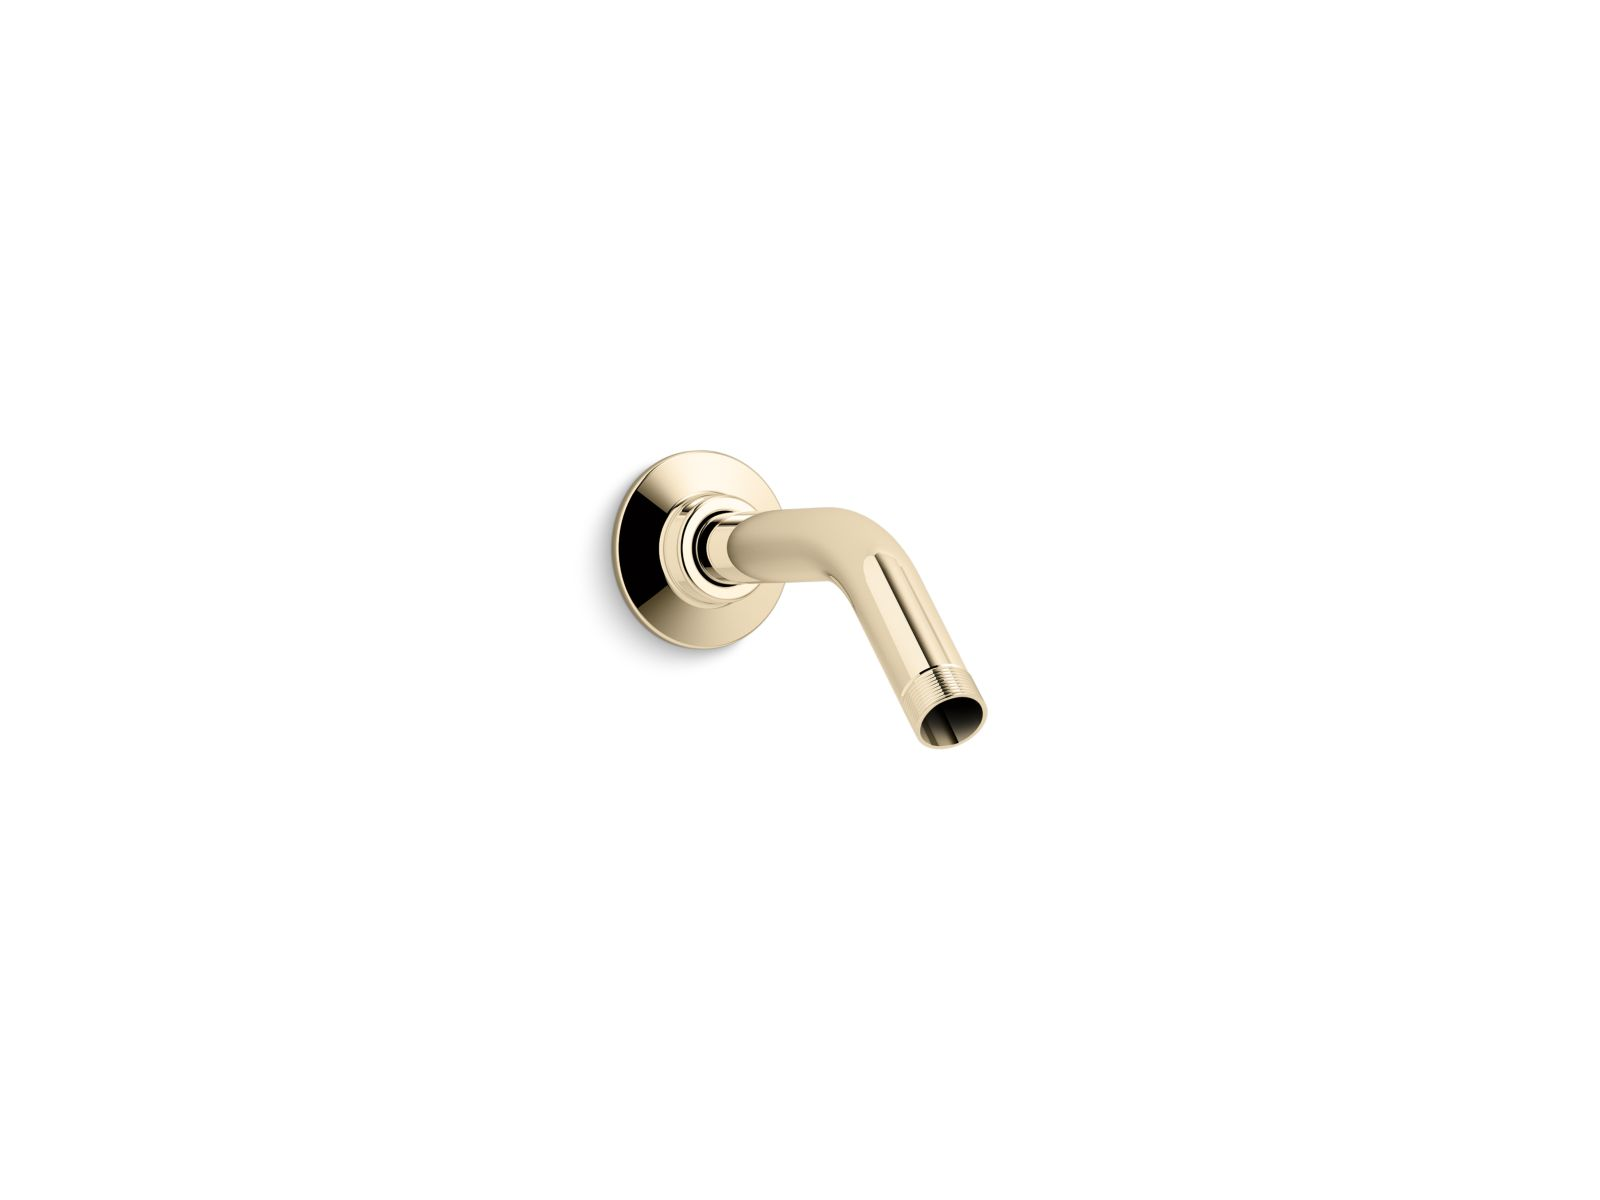 "Kohler MasterShower® K-7395-AF Showerarm and flange, 5-3/8"" long Vibrant French Gold"